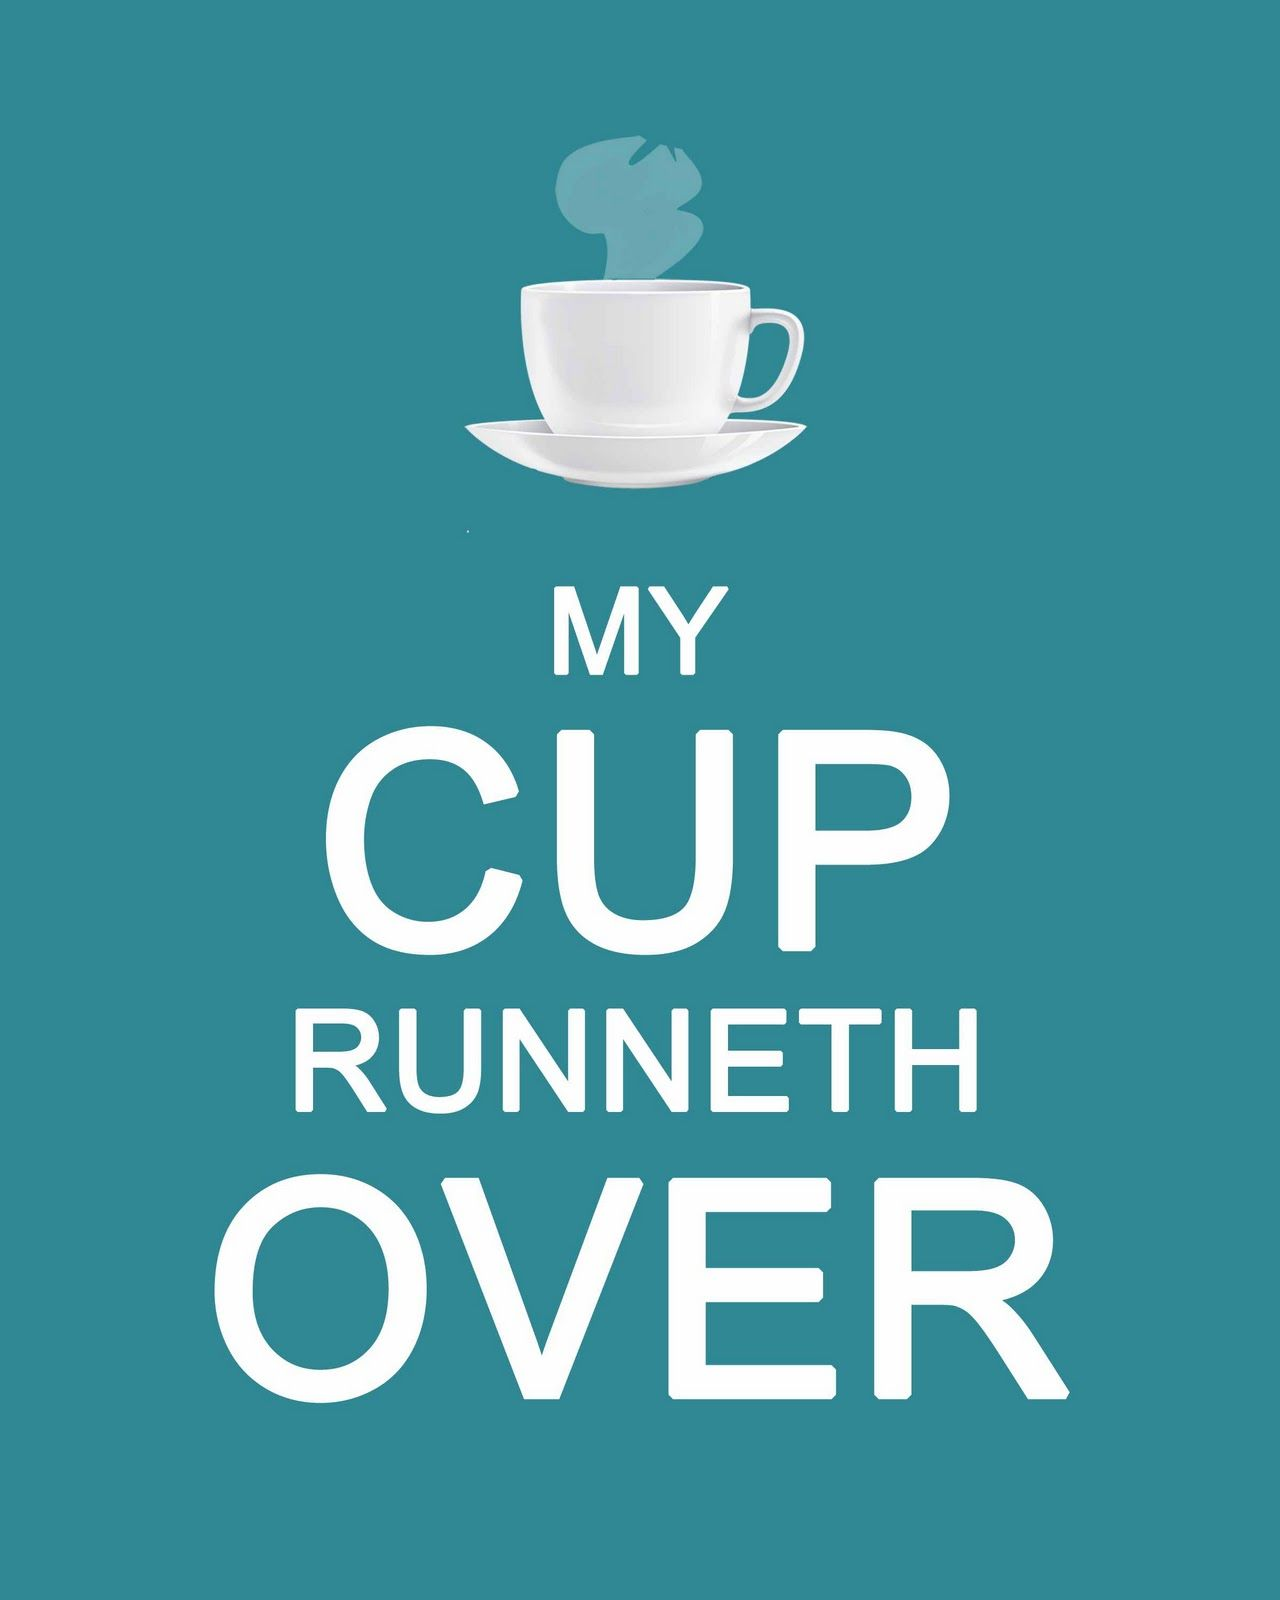 Pin by Lauren Leah on Tea | Pinterest | Bonjour, Coffee and Cups